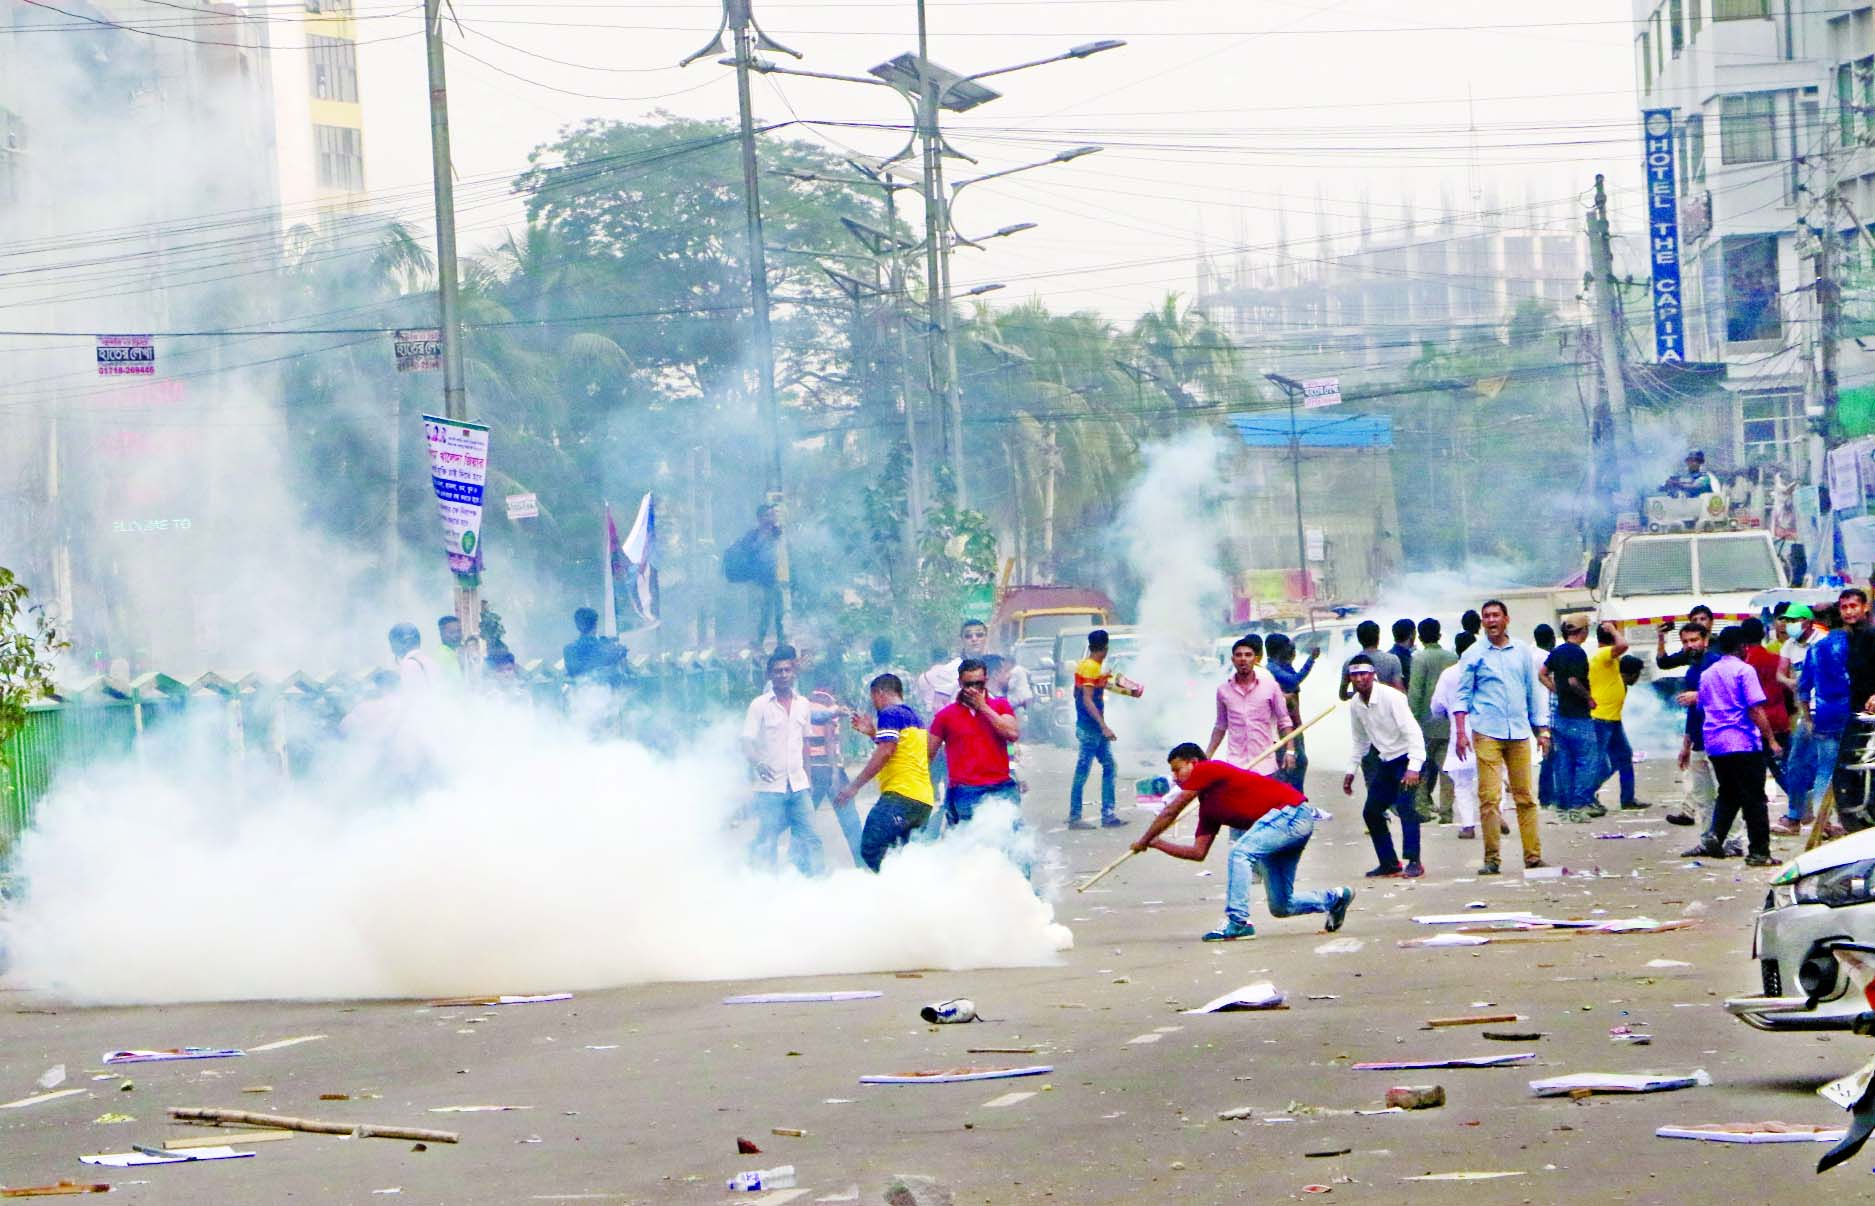 Police lob teargas shells to disperse the crowd while they staged a big showdown in front of Nayapaltan's BNP office during nomination seeking time ahead of national election for 3rd consecutive day on Wednesday.